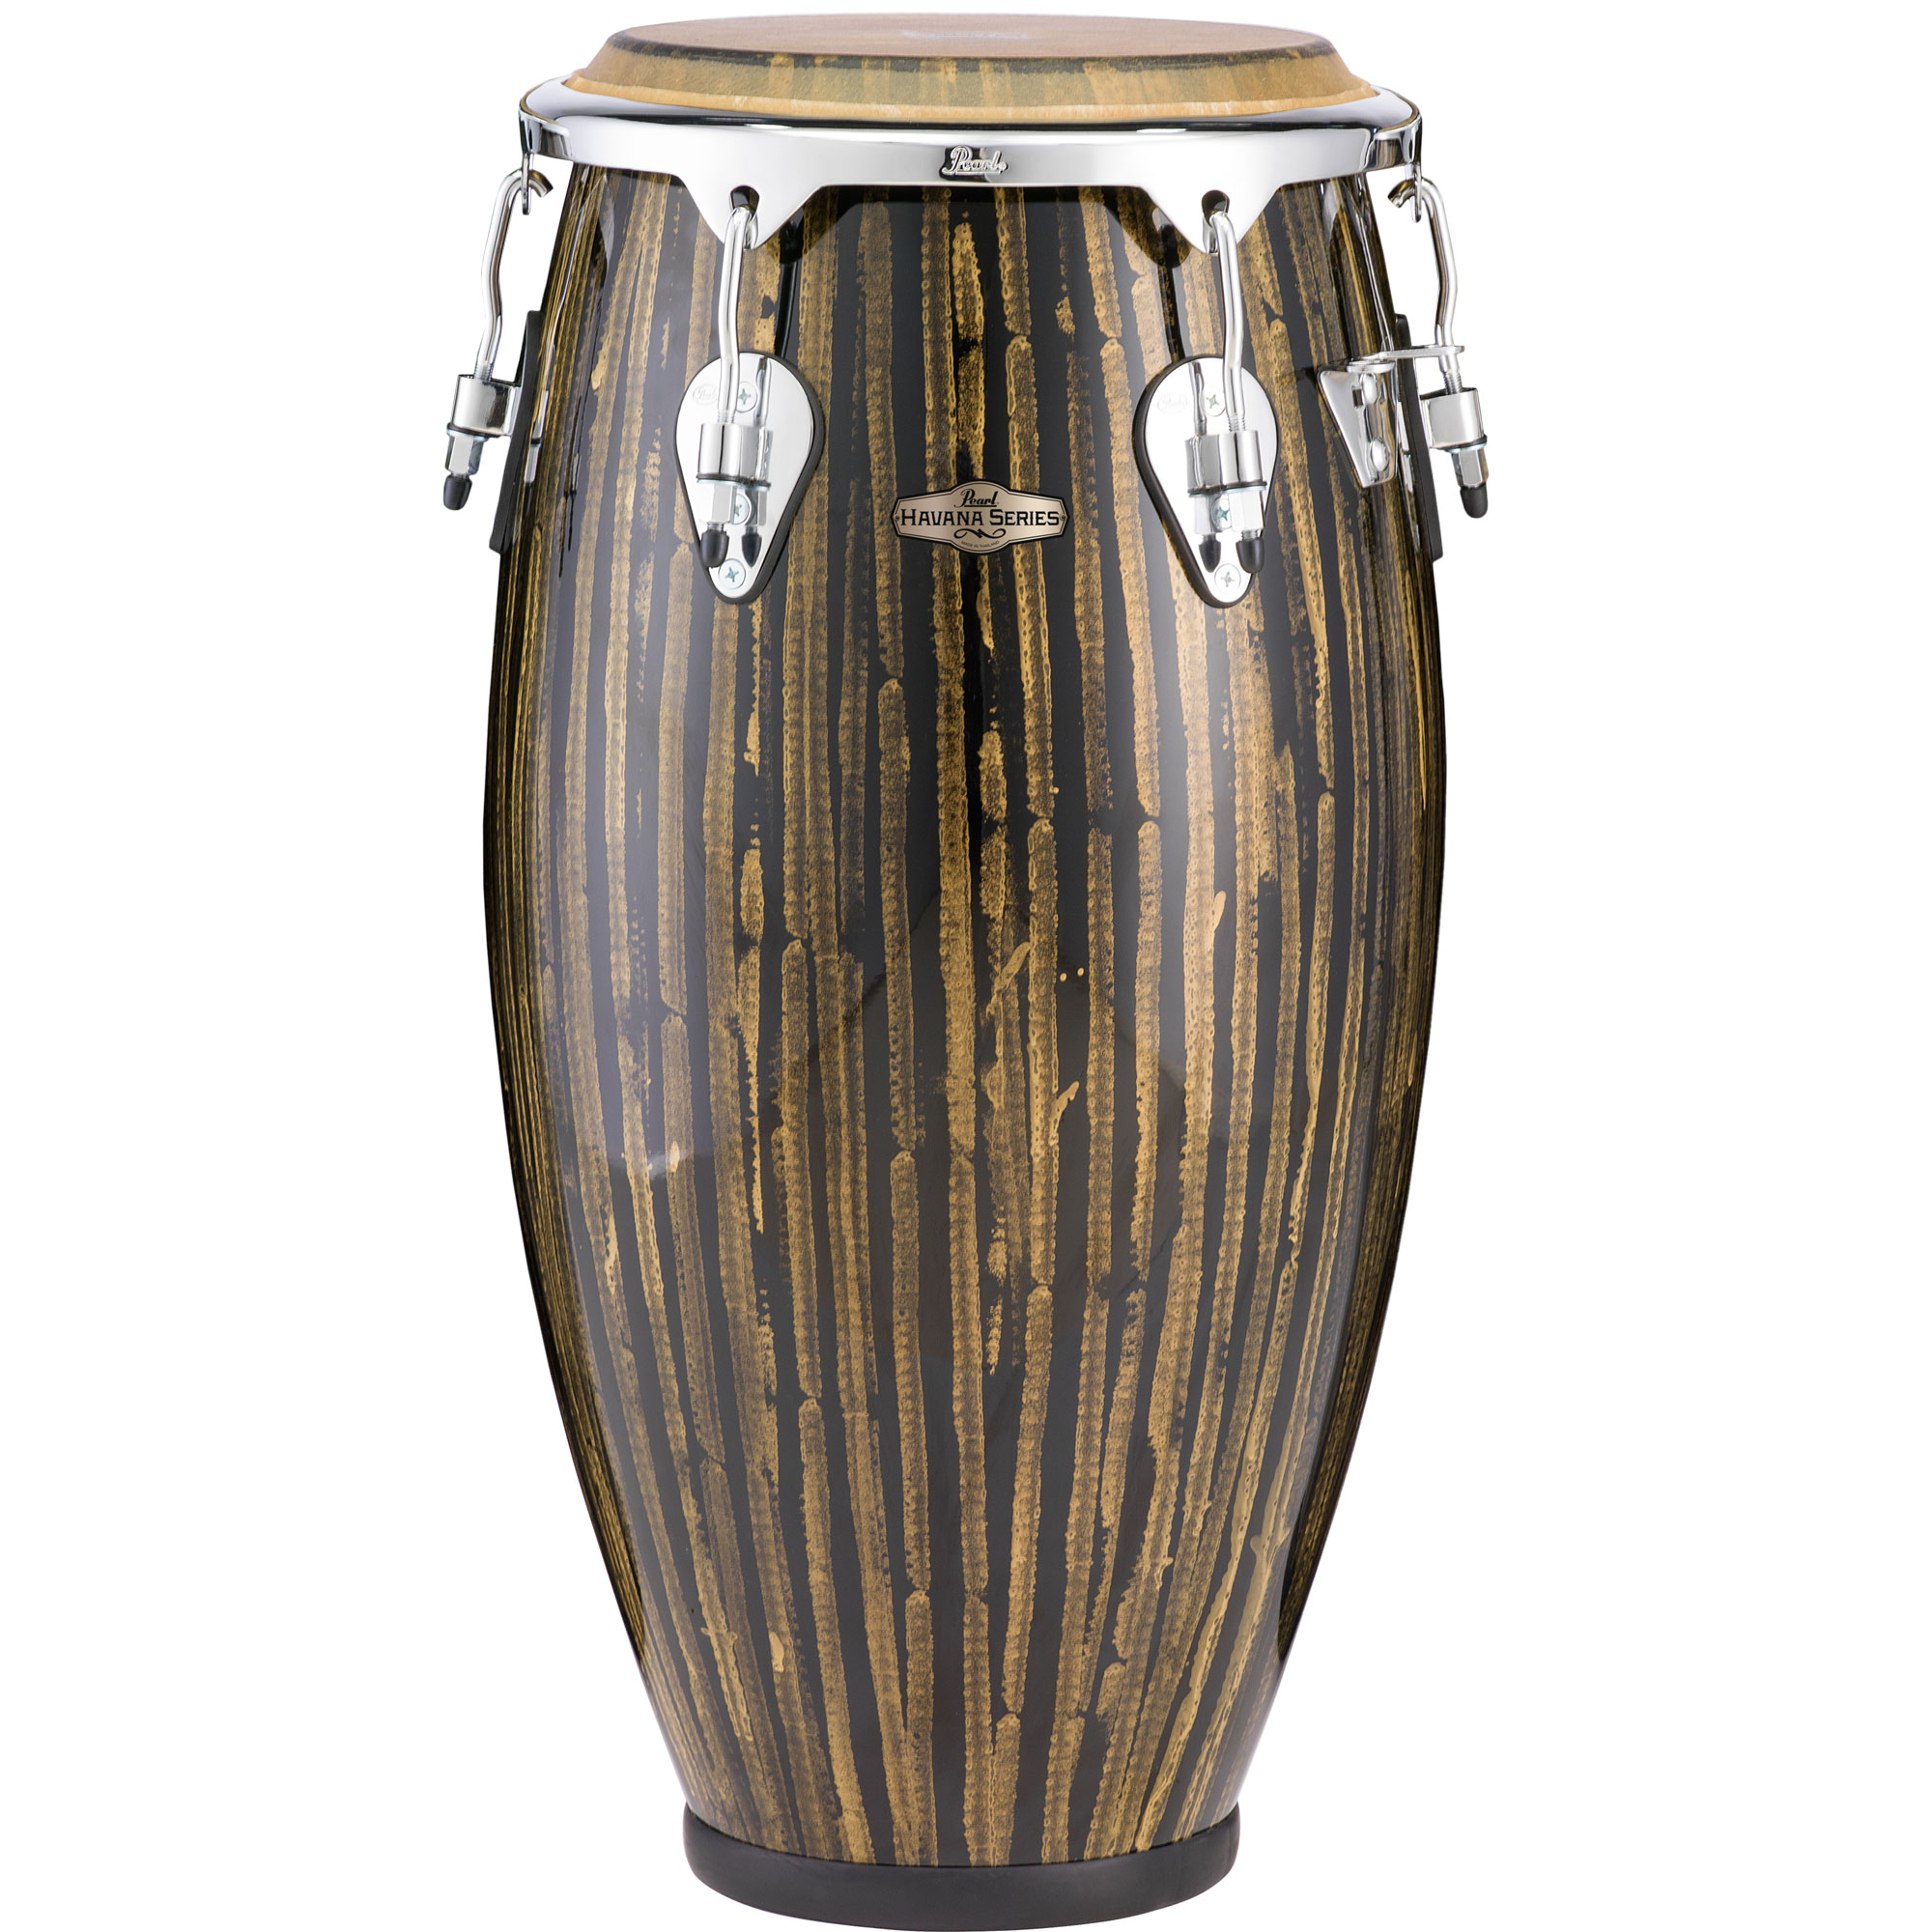 "Pearl 12"" Havana Series Fiberglass Tumba Conga in Liquid Gold with Chrome Hardware"